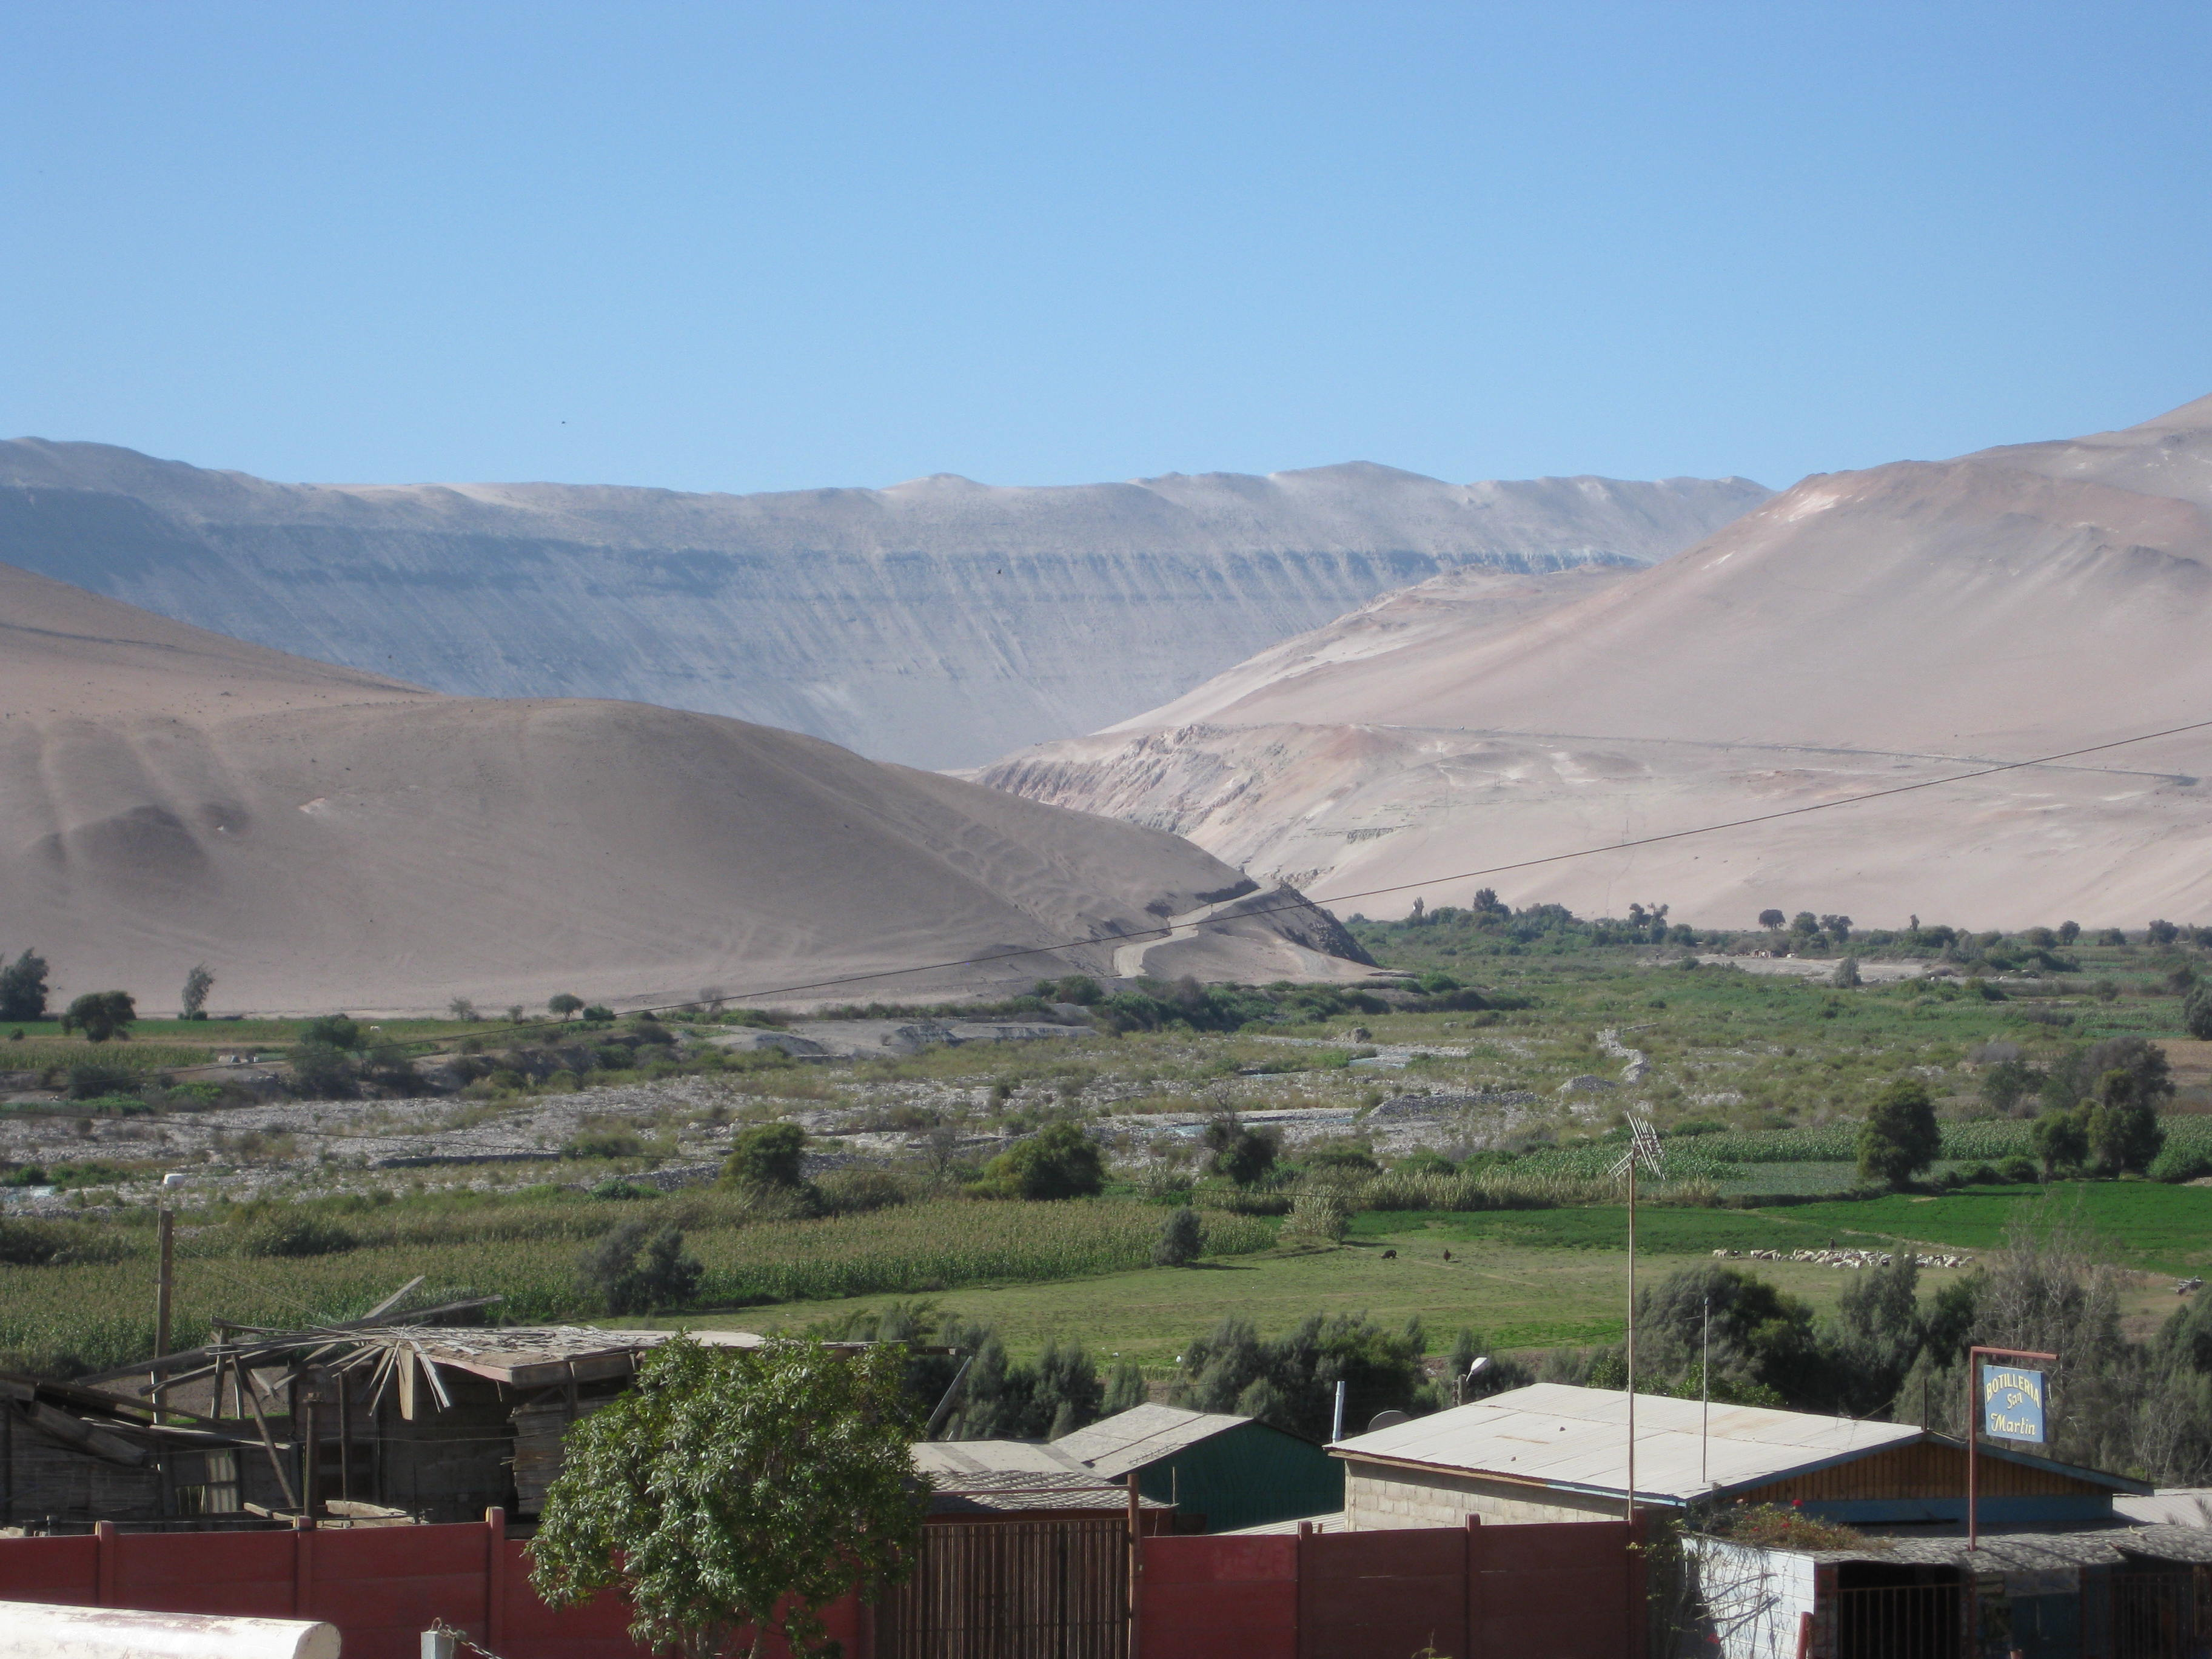 A view of the green valley and the brown dessert